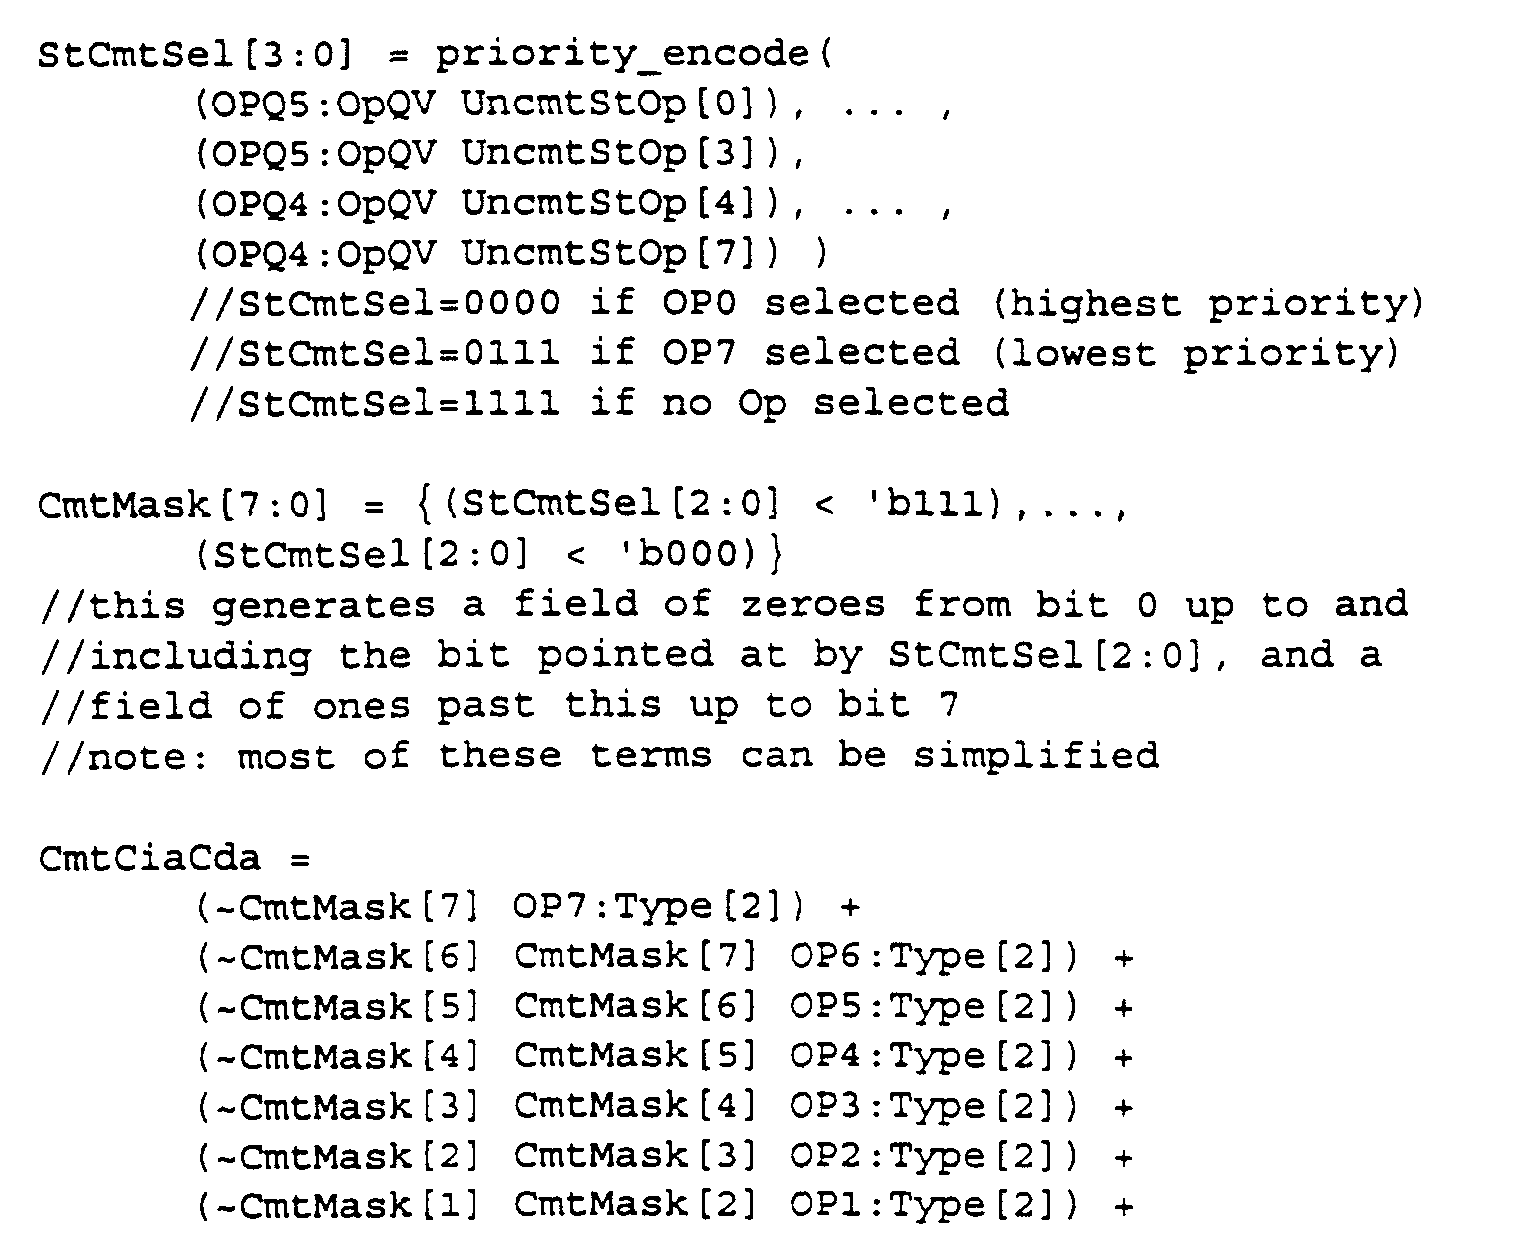 black ops 4 patch notes 10/31